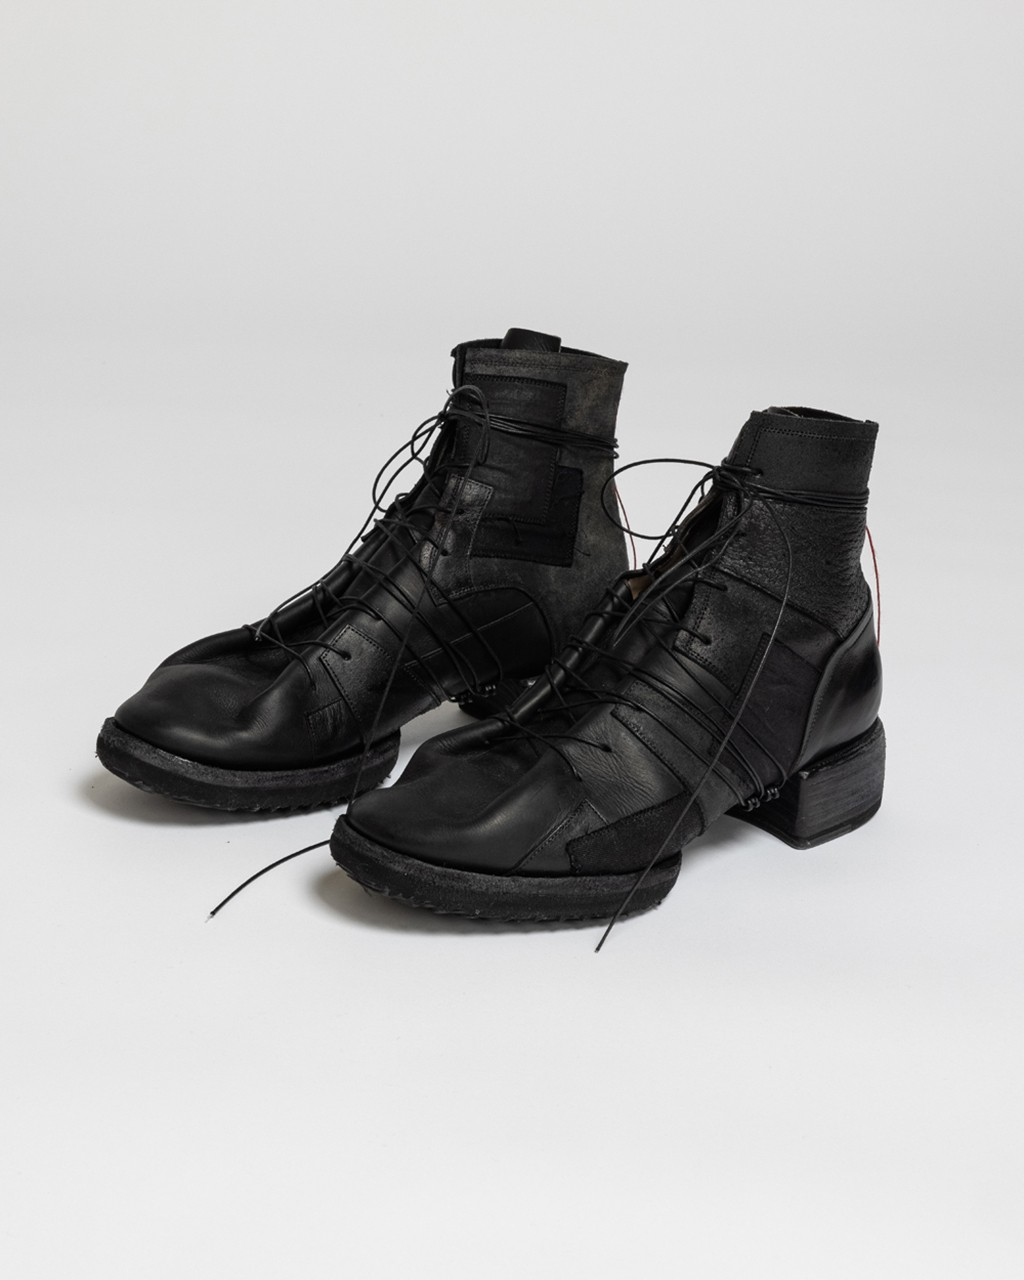 21AW DUE-Ⅲ-041-SHO Patched Boots